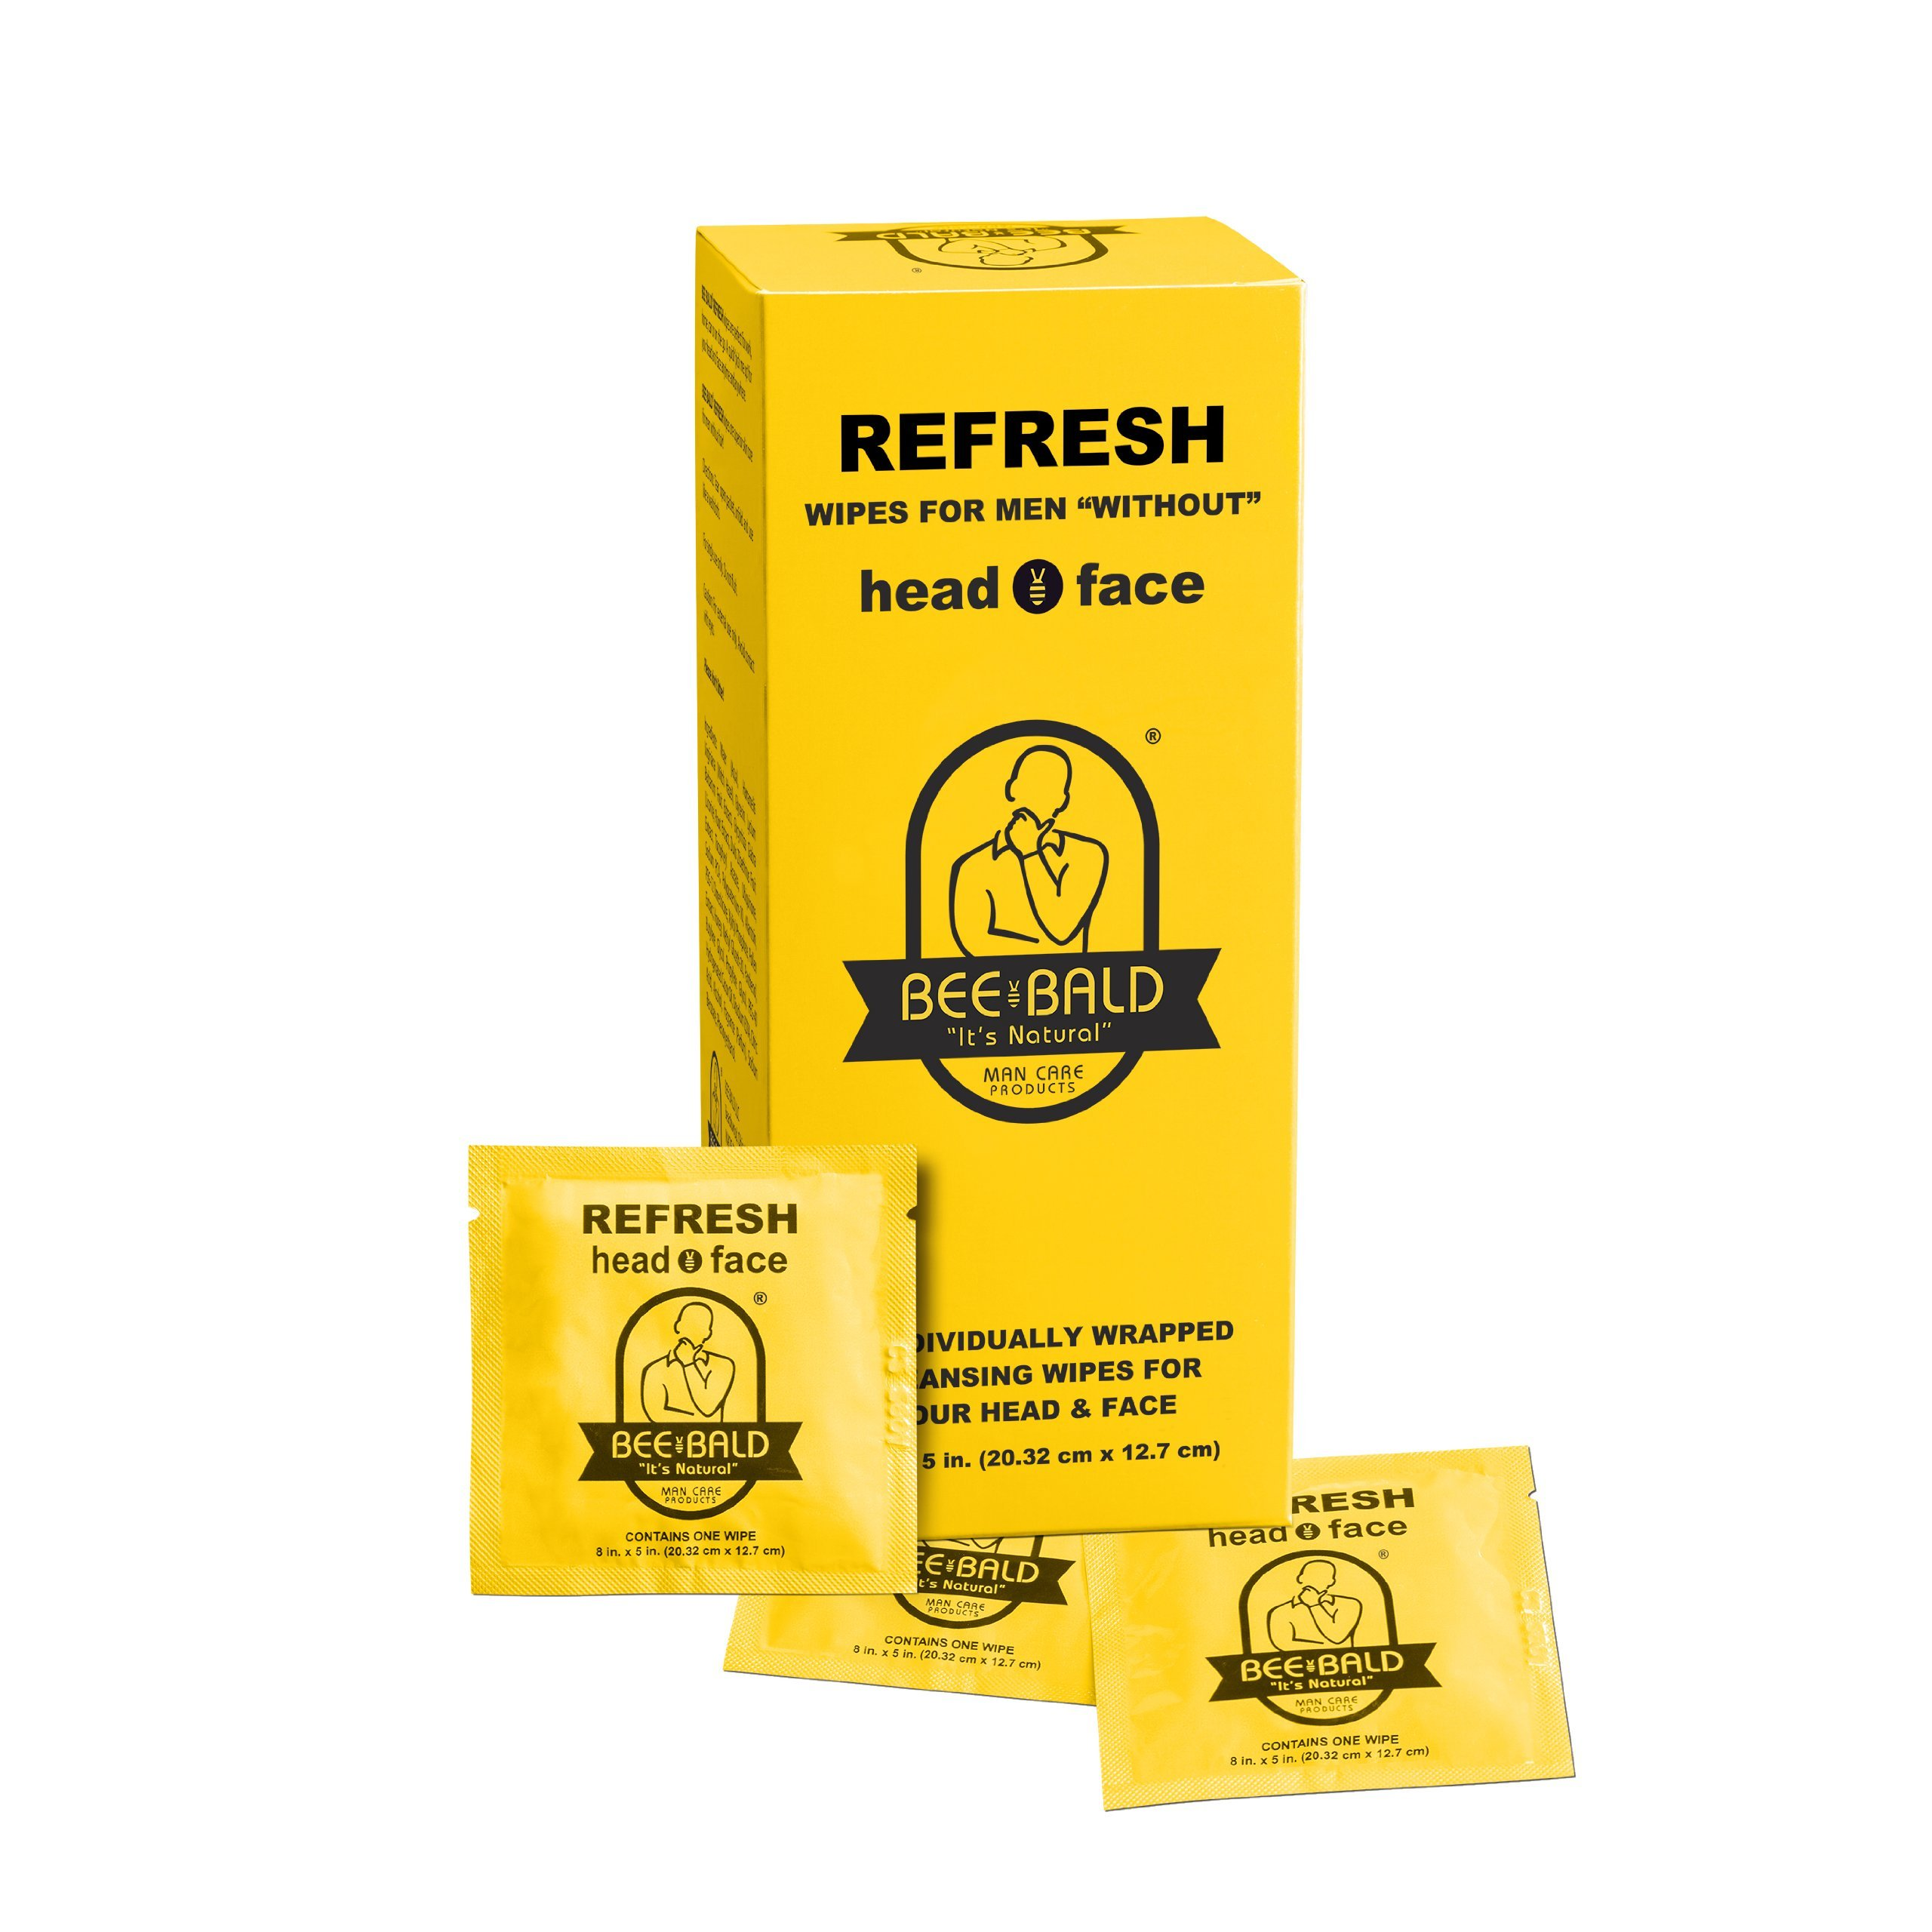 Bee Bald REFRESH individual wipes (30 Per Carton)